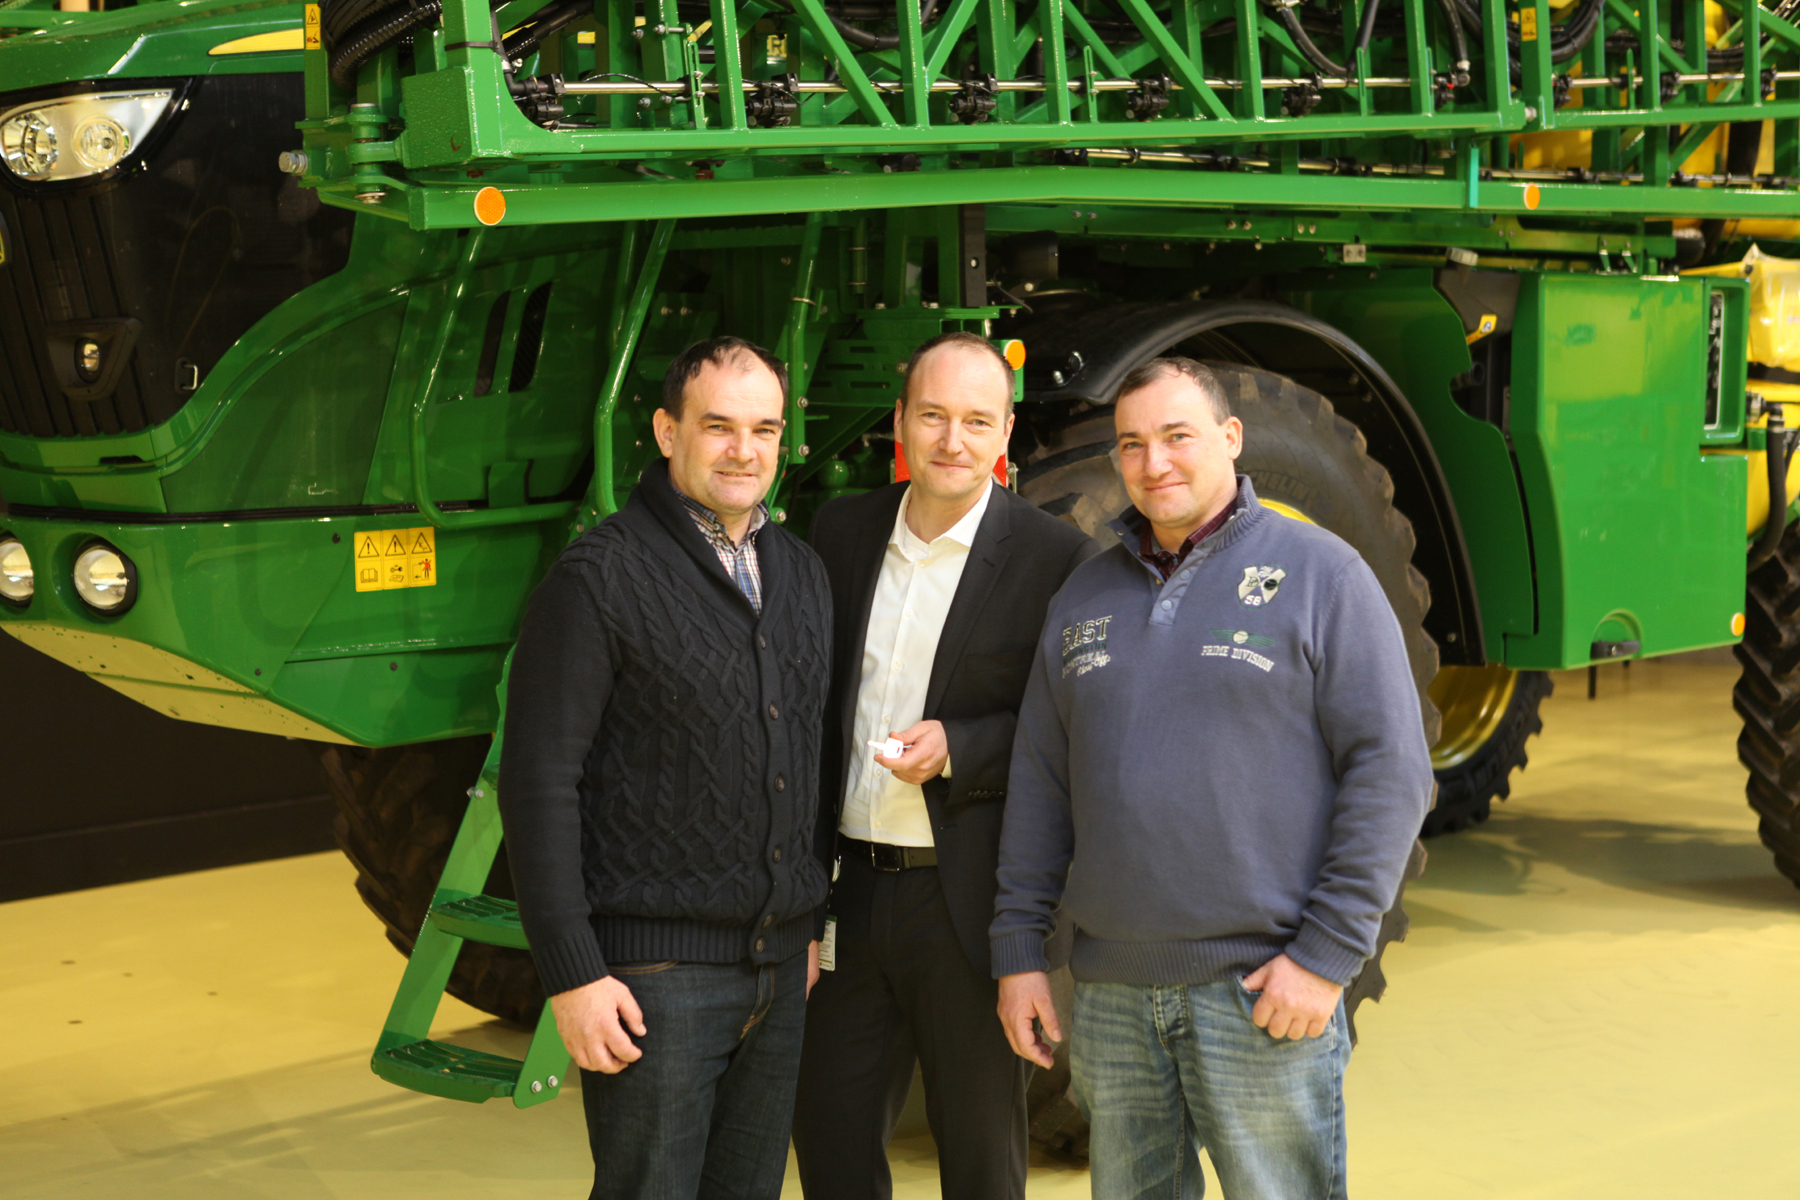 The Gold Key for John Deere Horst's 1000th self-propelled sprayer was handed over by factory manager Matthias Steiner to Czech customers Miloslav and Zdenek Lukas at the new visitor centre in February 2017.